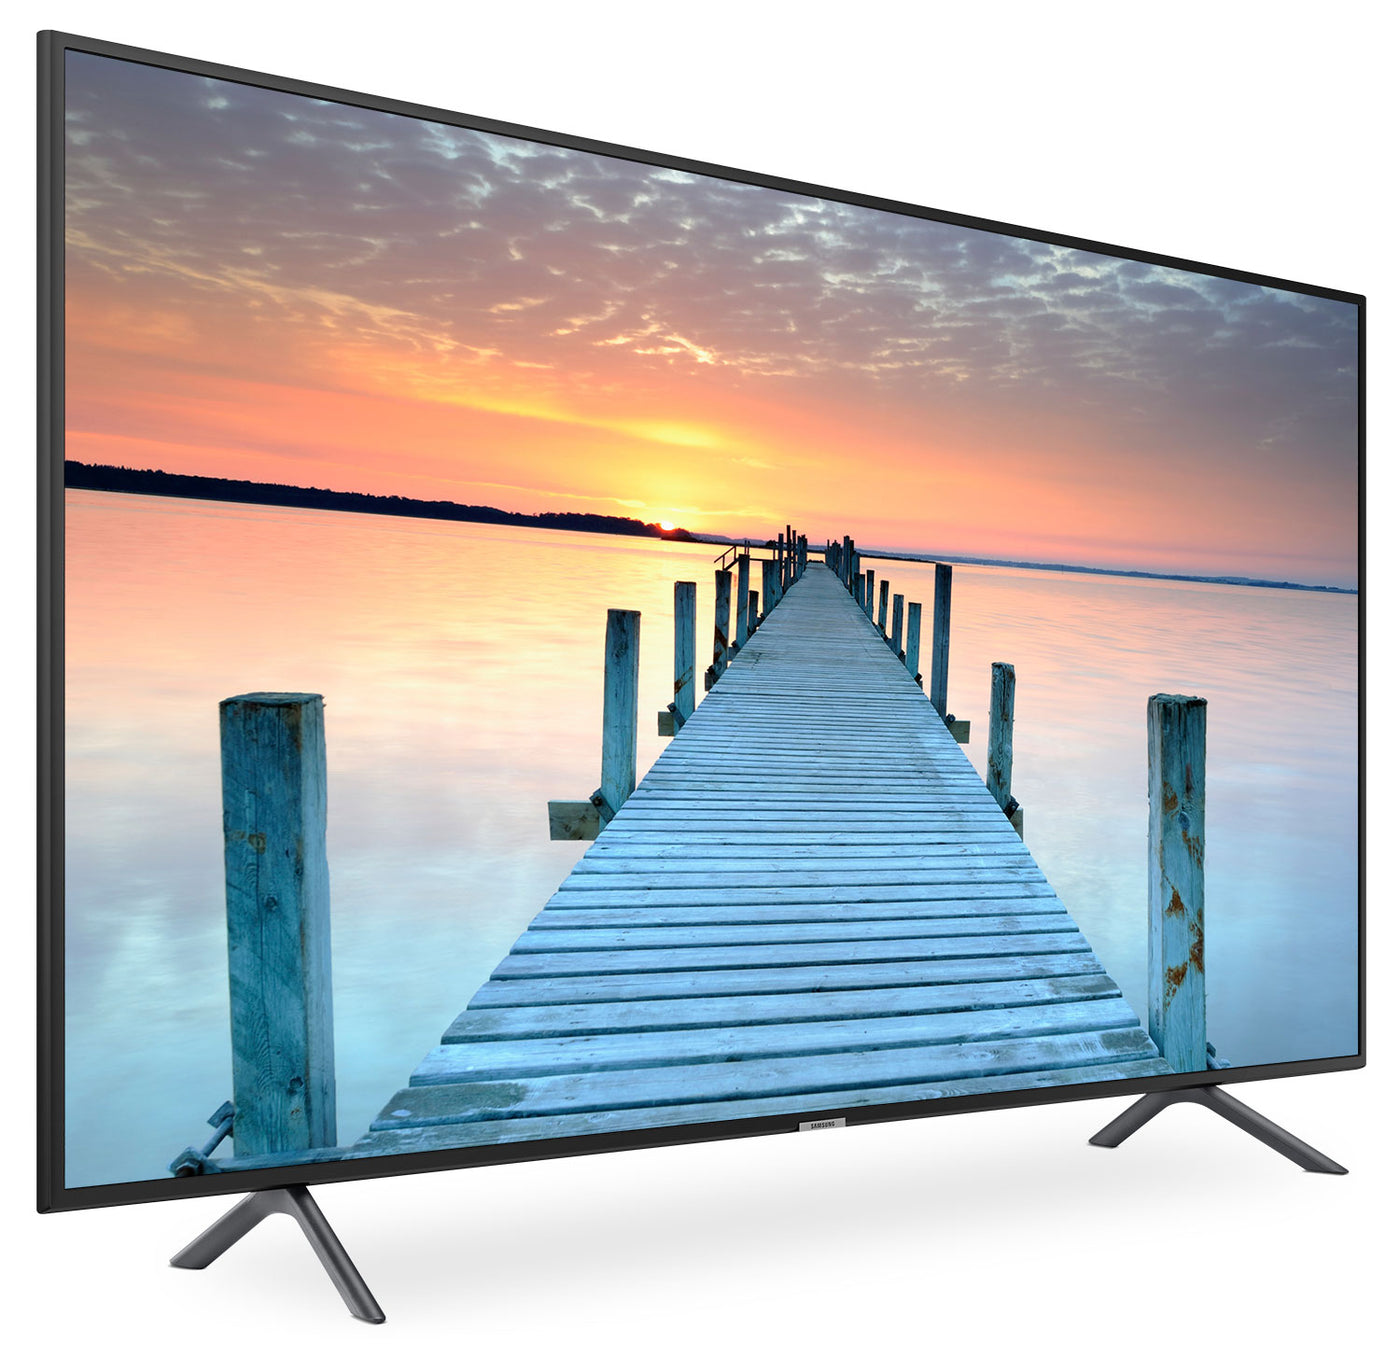 a6f7fc570798 ... SMART TV Samsung NU7100 UHD 4K. Tap to expand. last chance. Previous;  Next